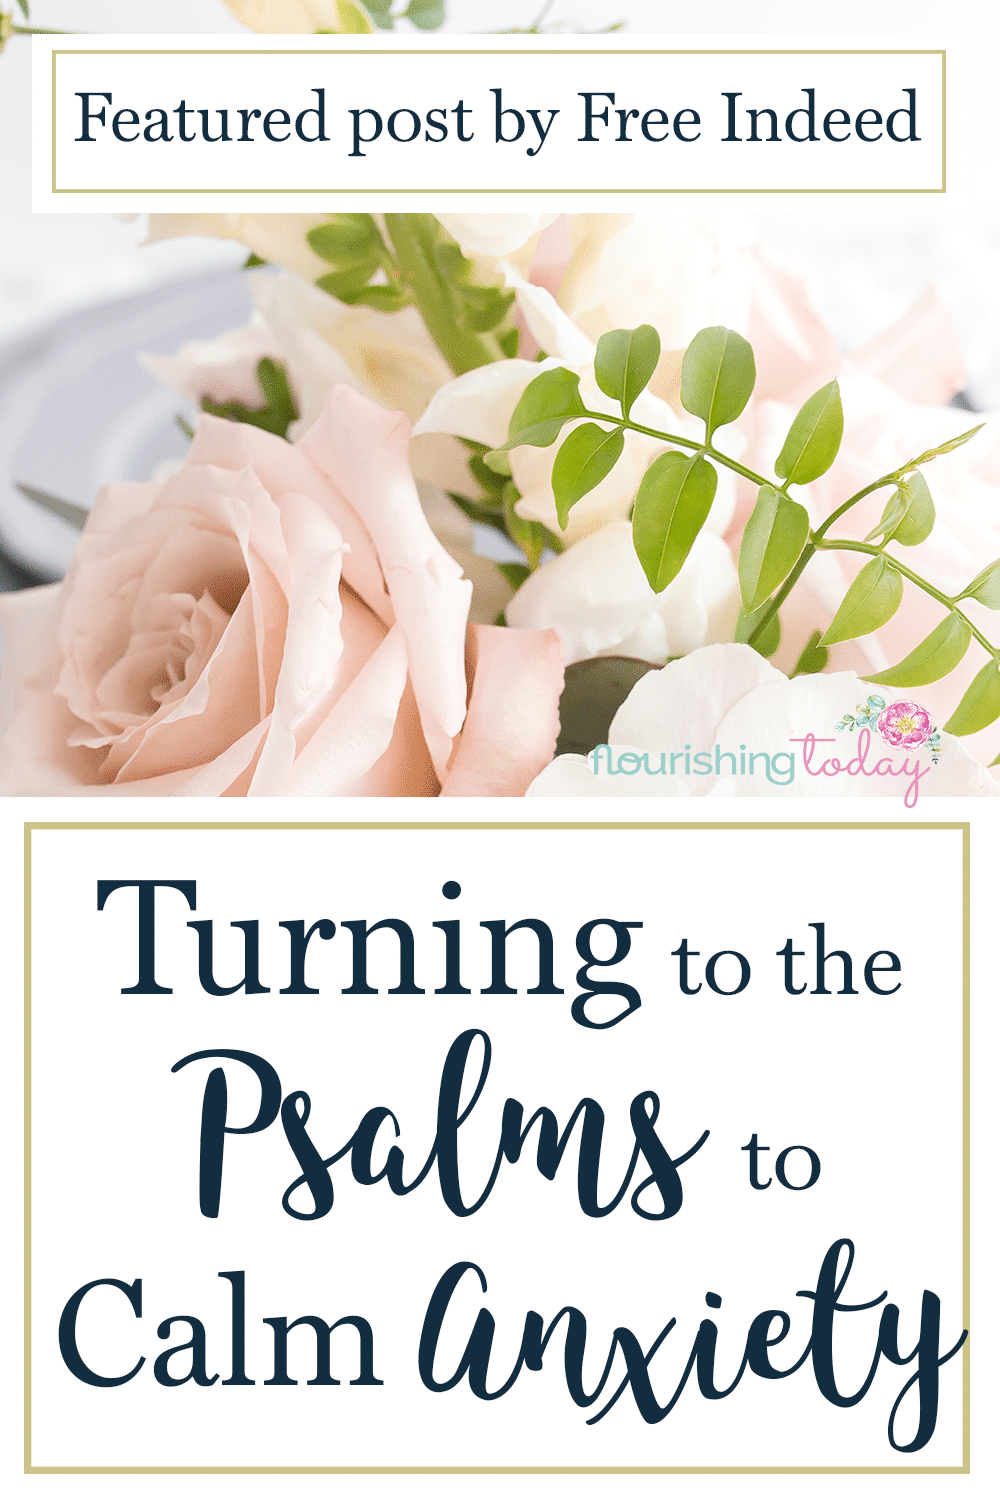 Where do you turn when you are feeling anxious? The psalms are perfect to ease anxiety. They show us who God is and He's in control. Here are a few to help.